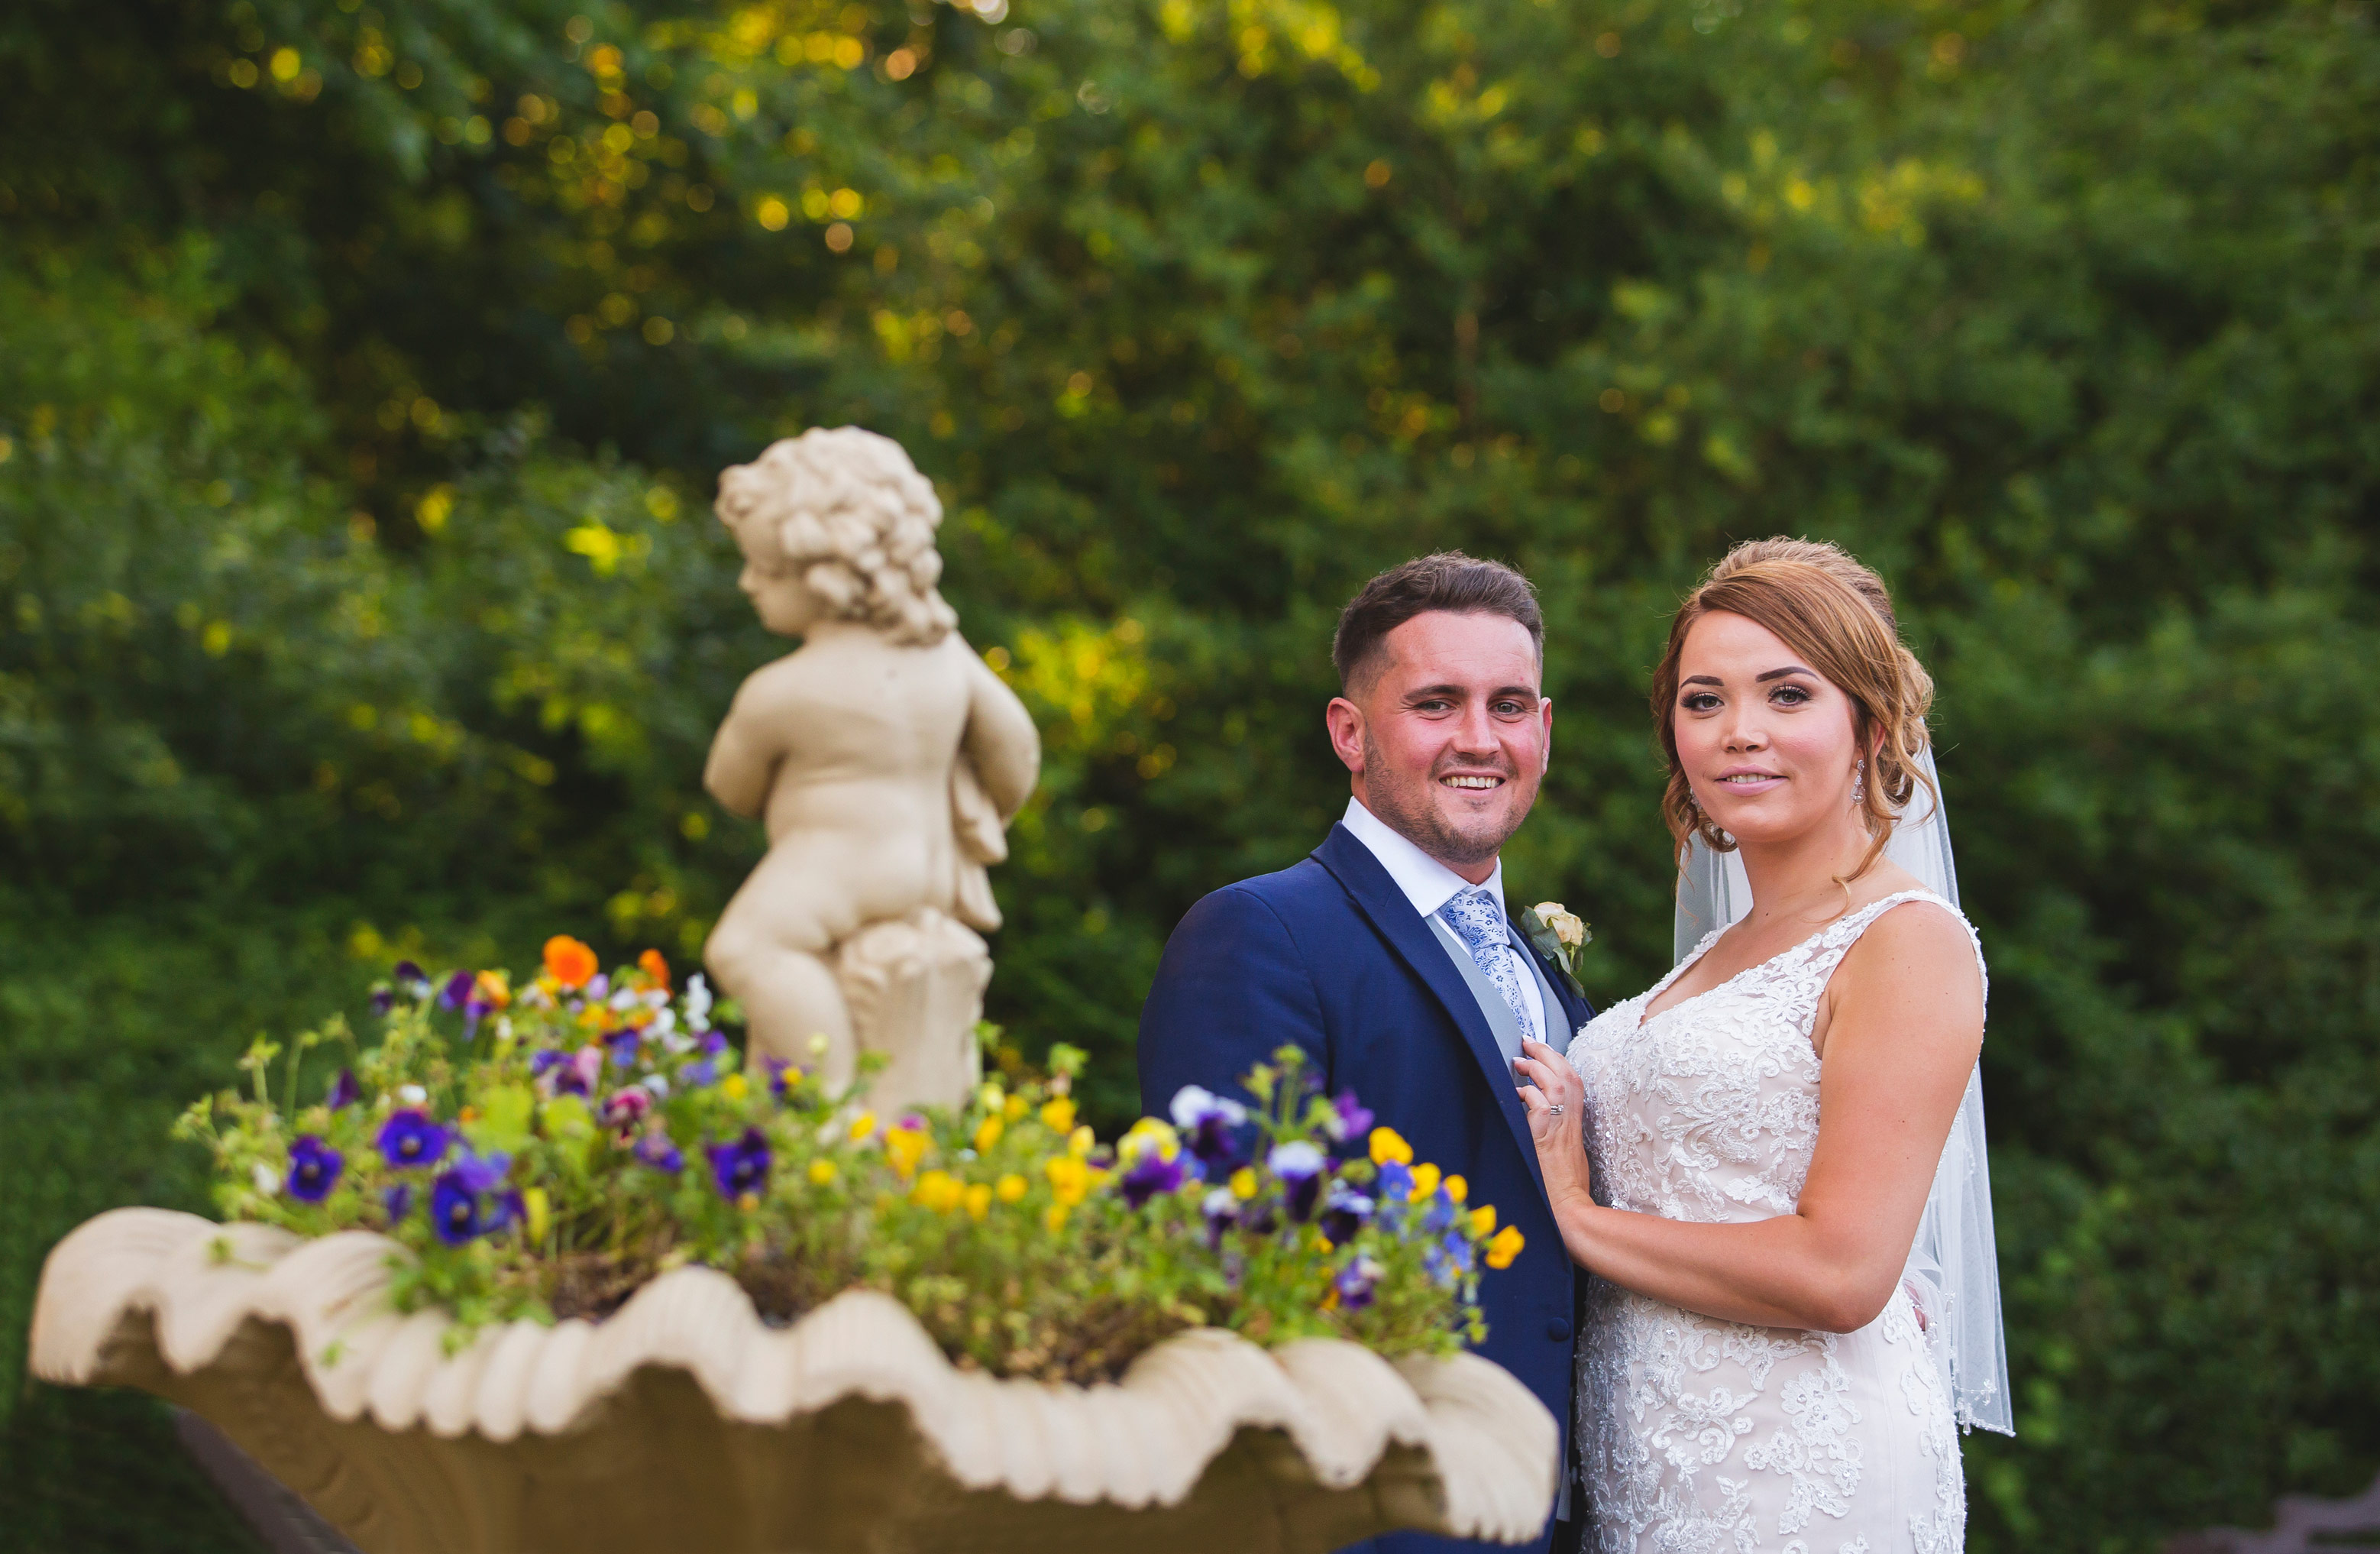 6Wedding Photographer South Wales